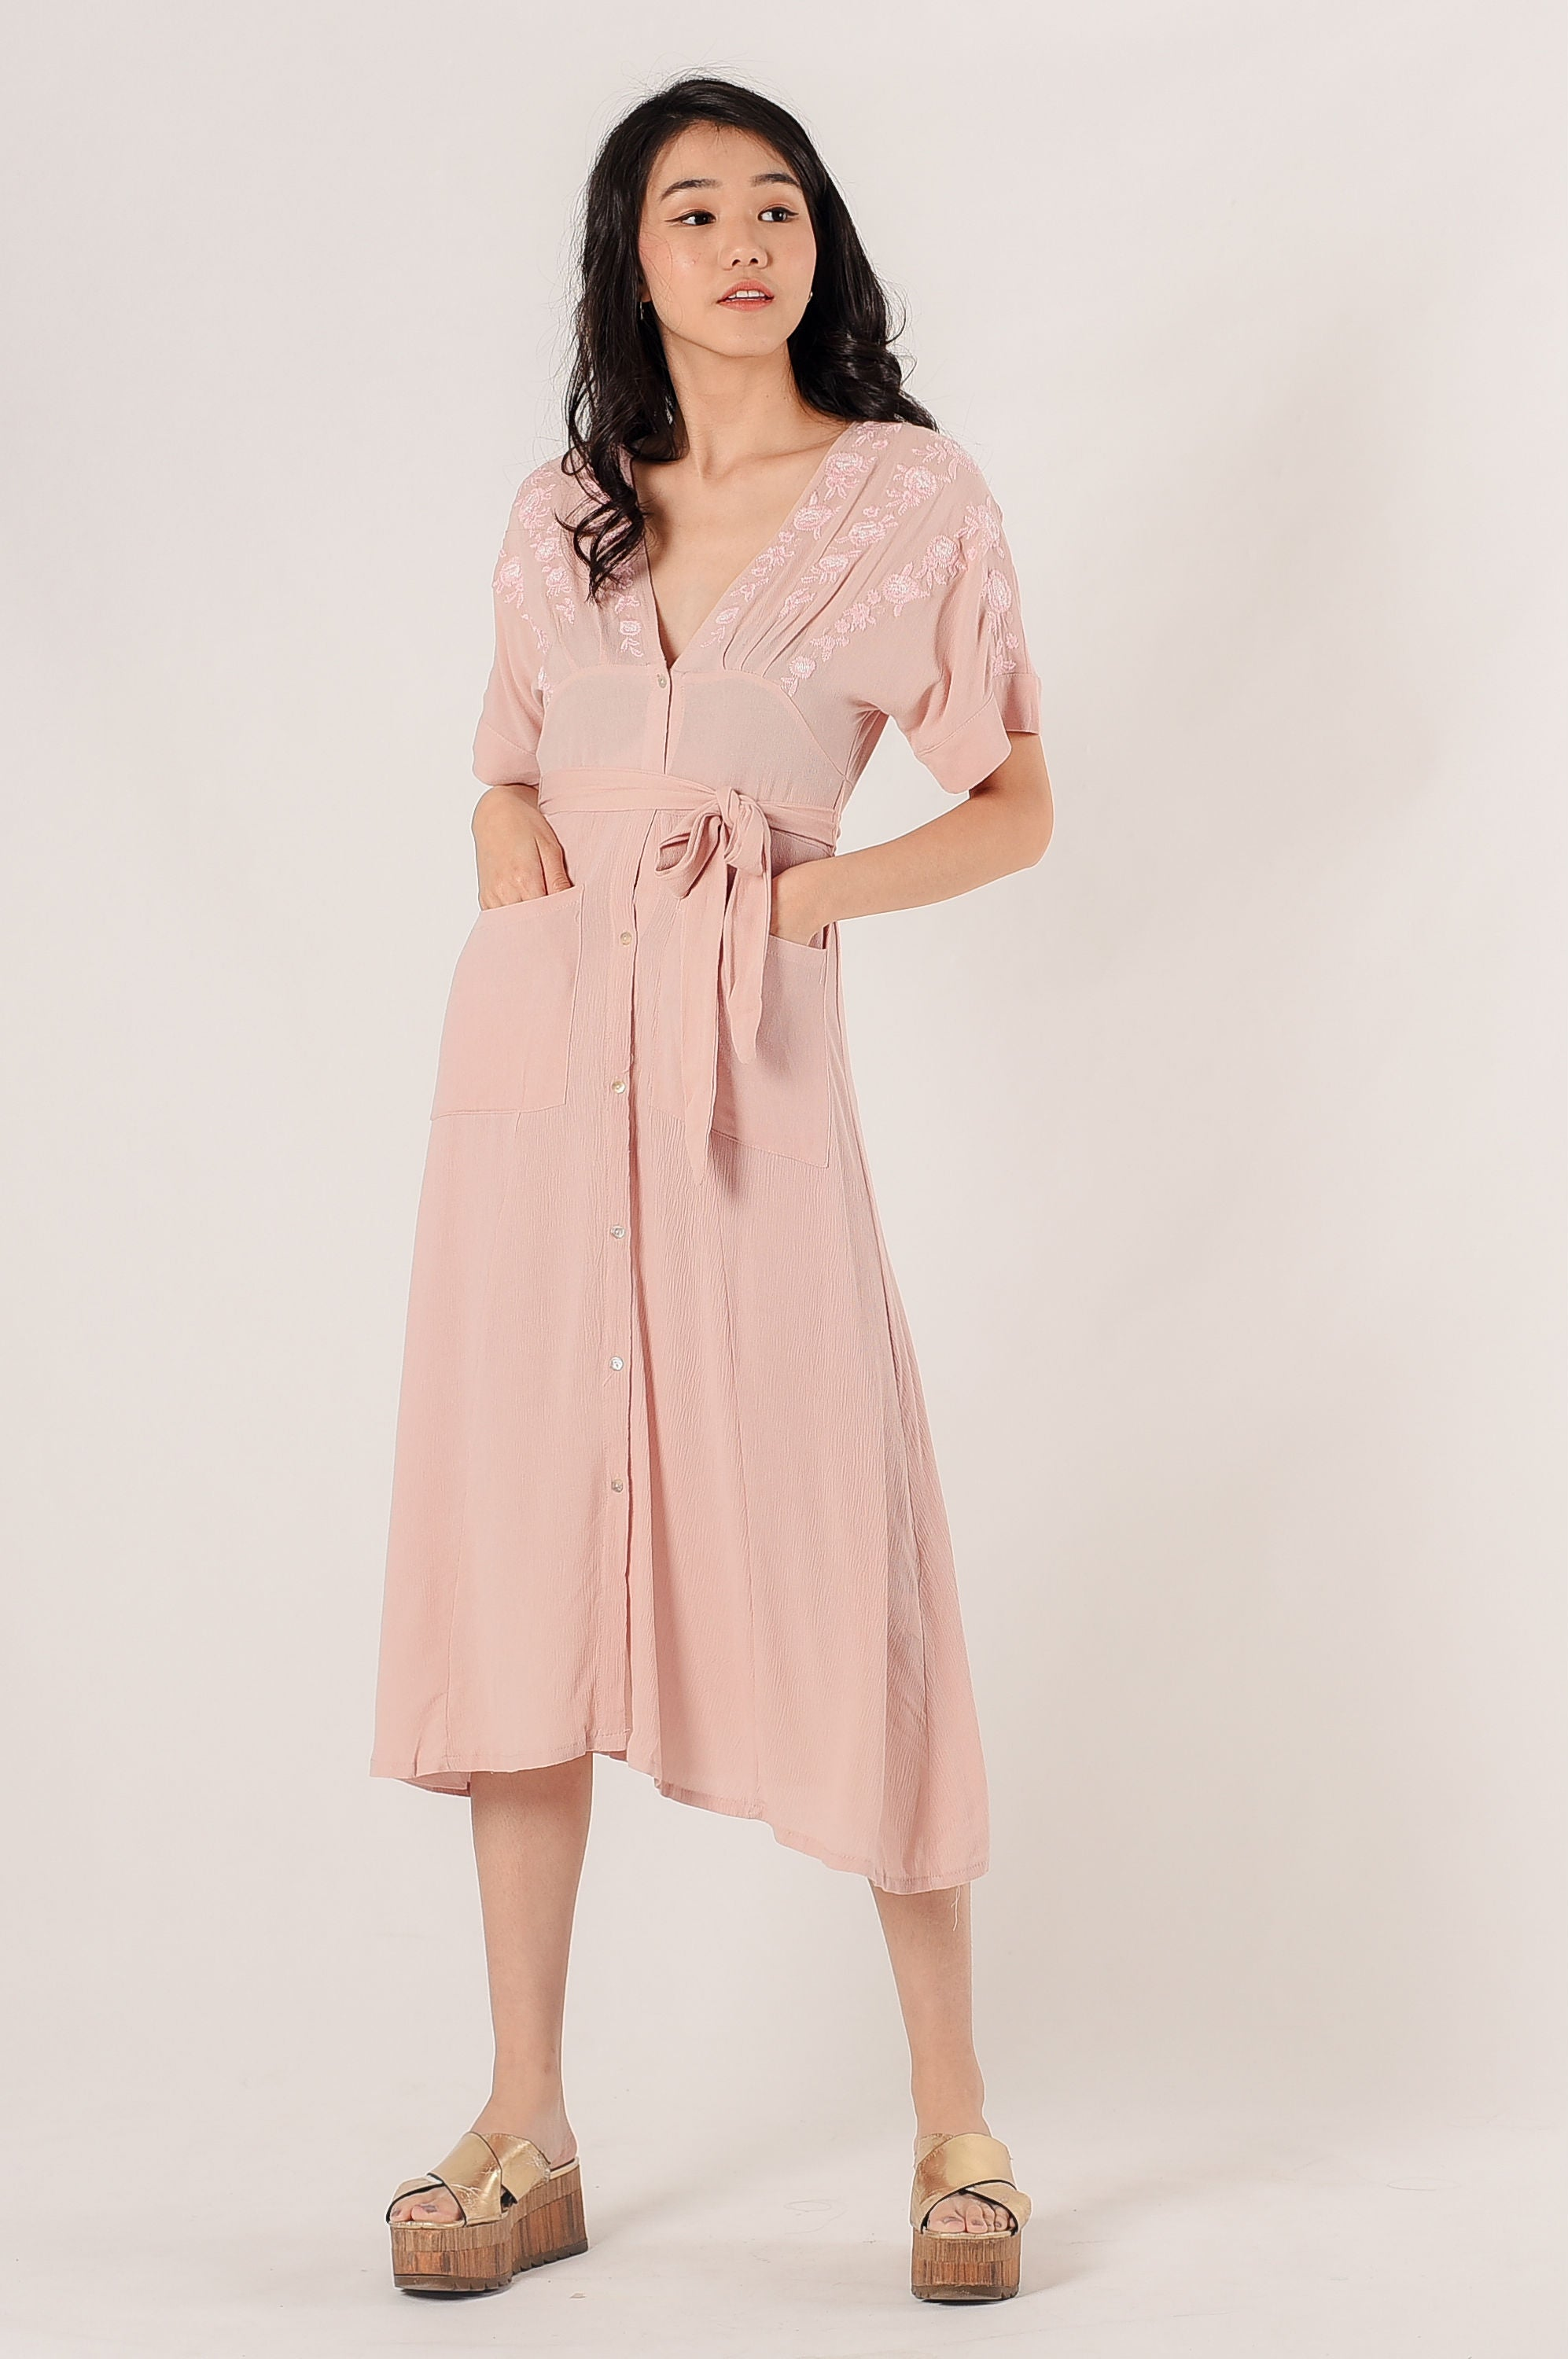 Kay Embroidered Dress - Pink